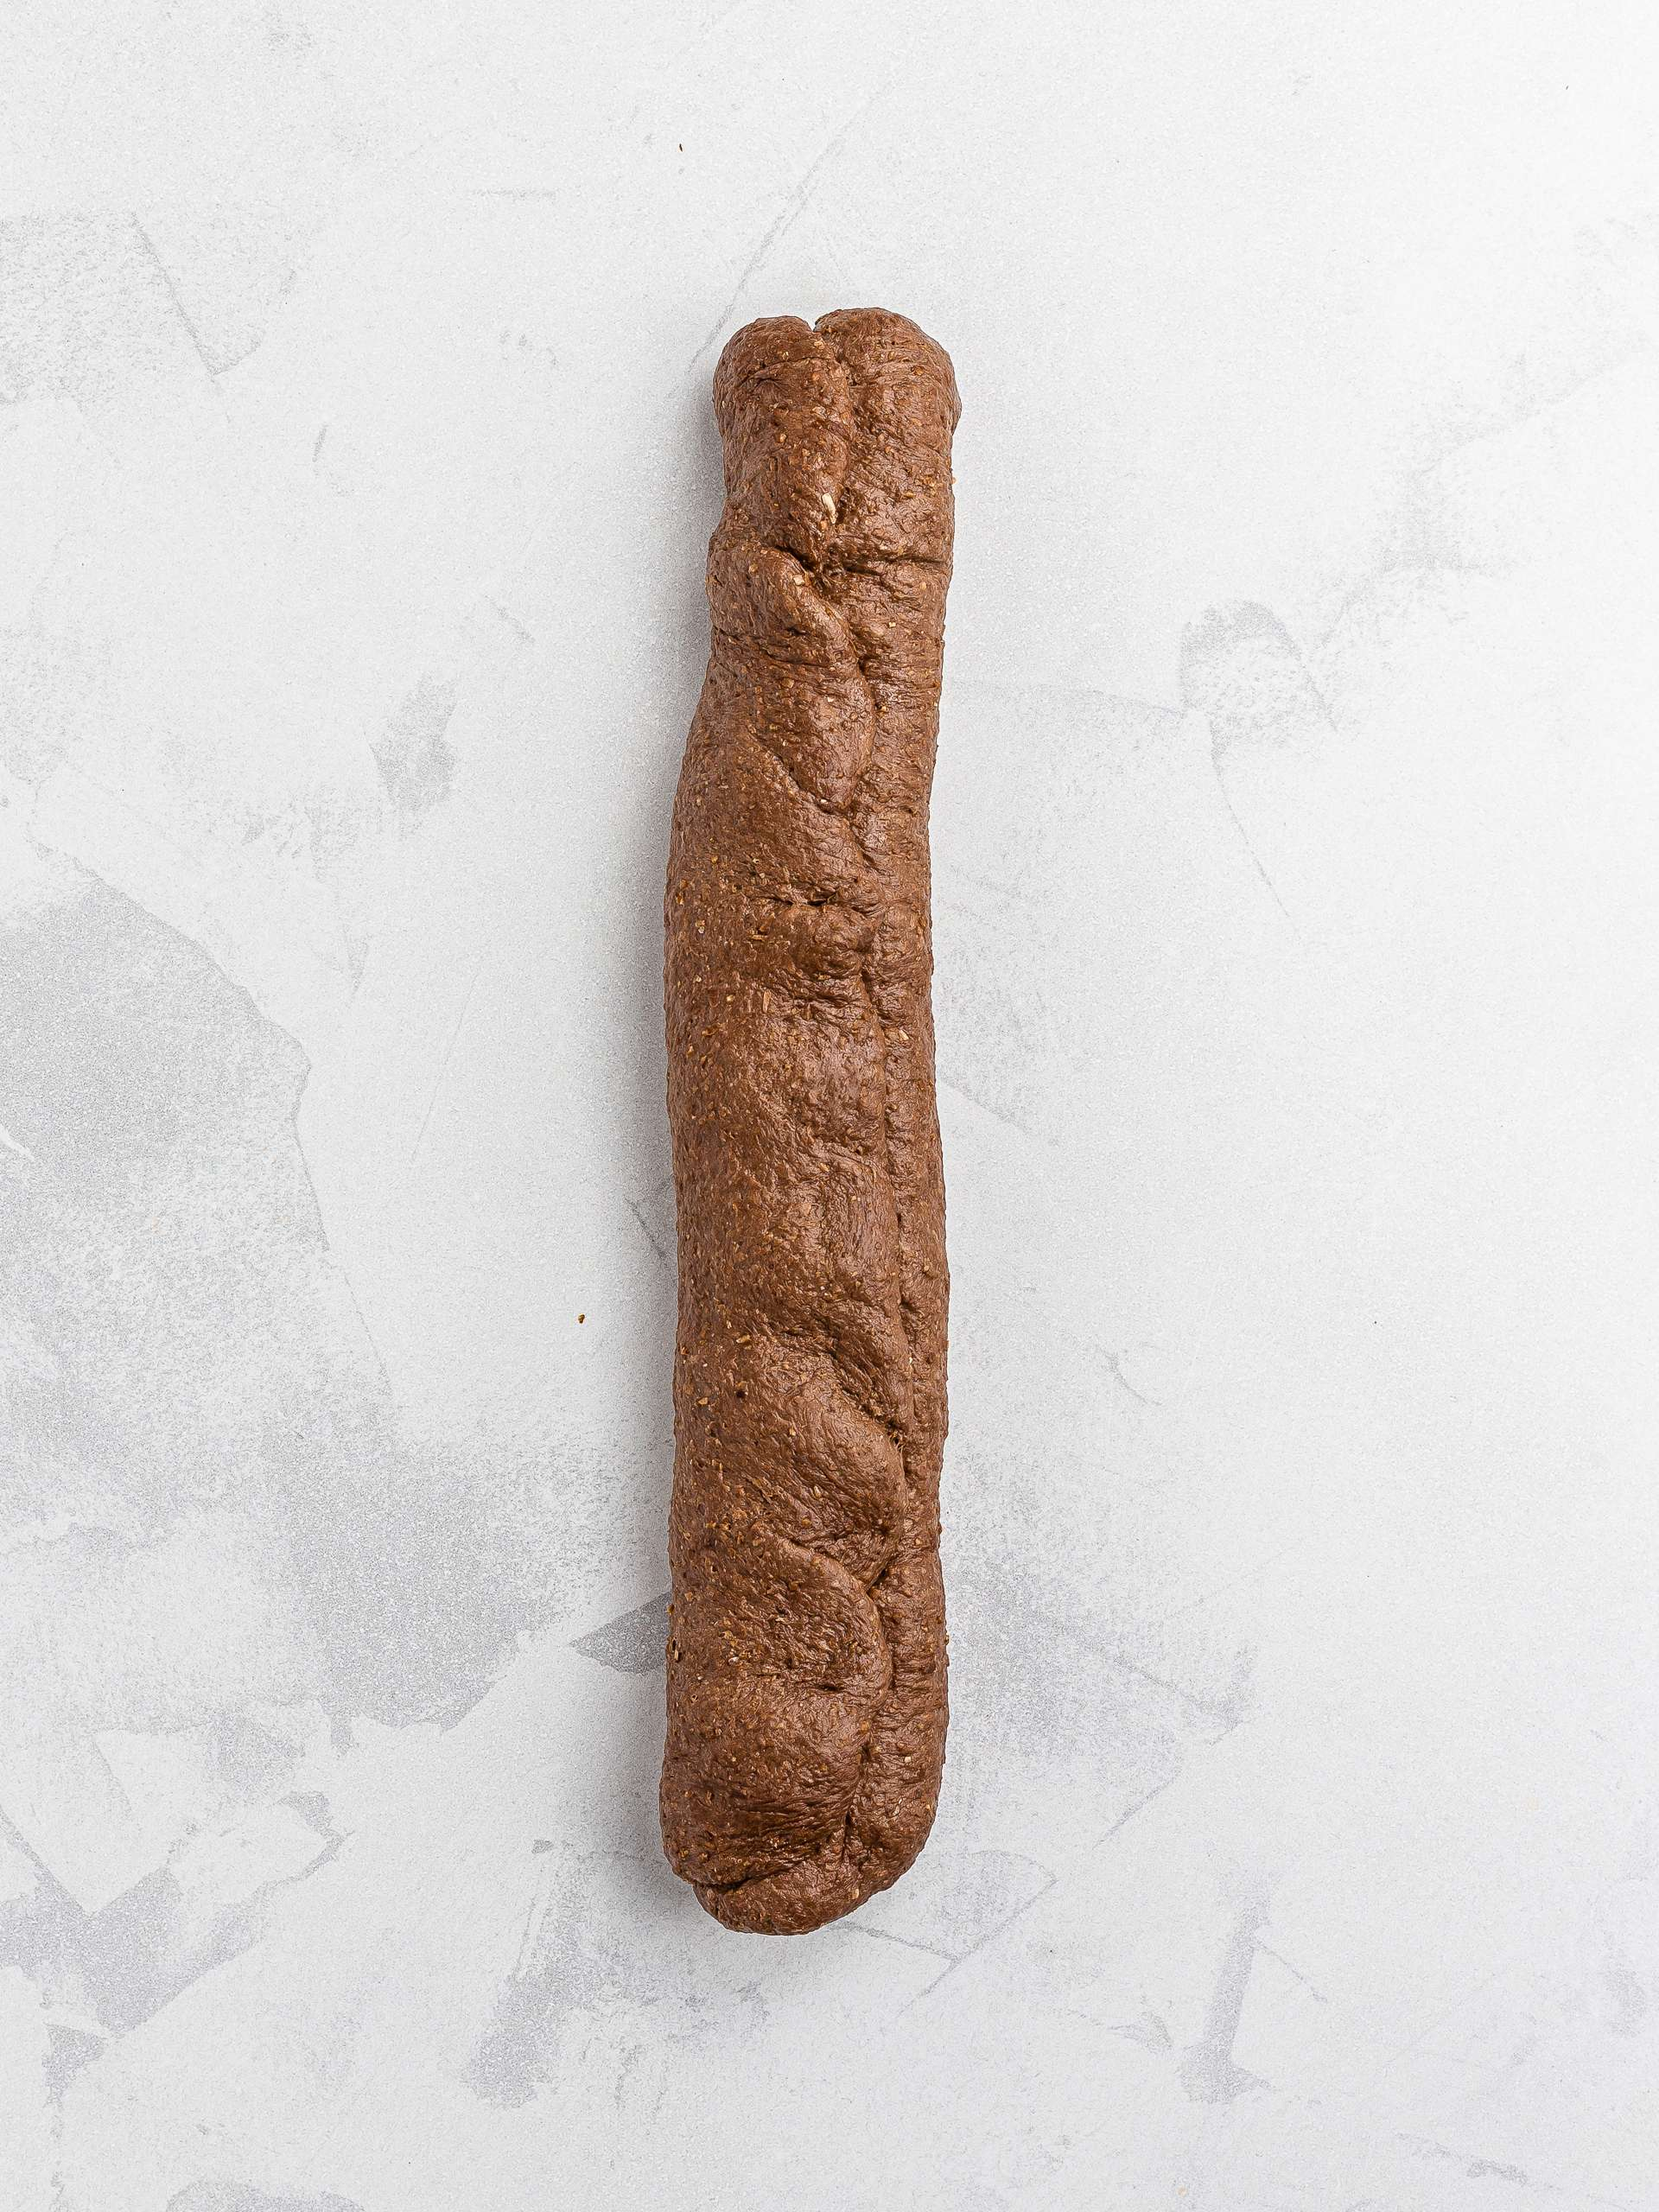 how to shape baguette bread